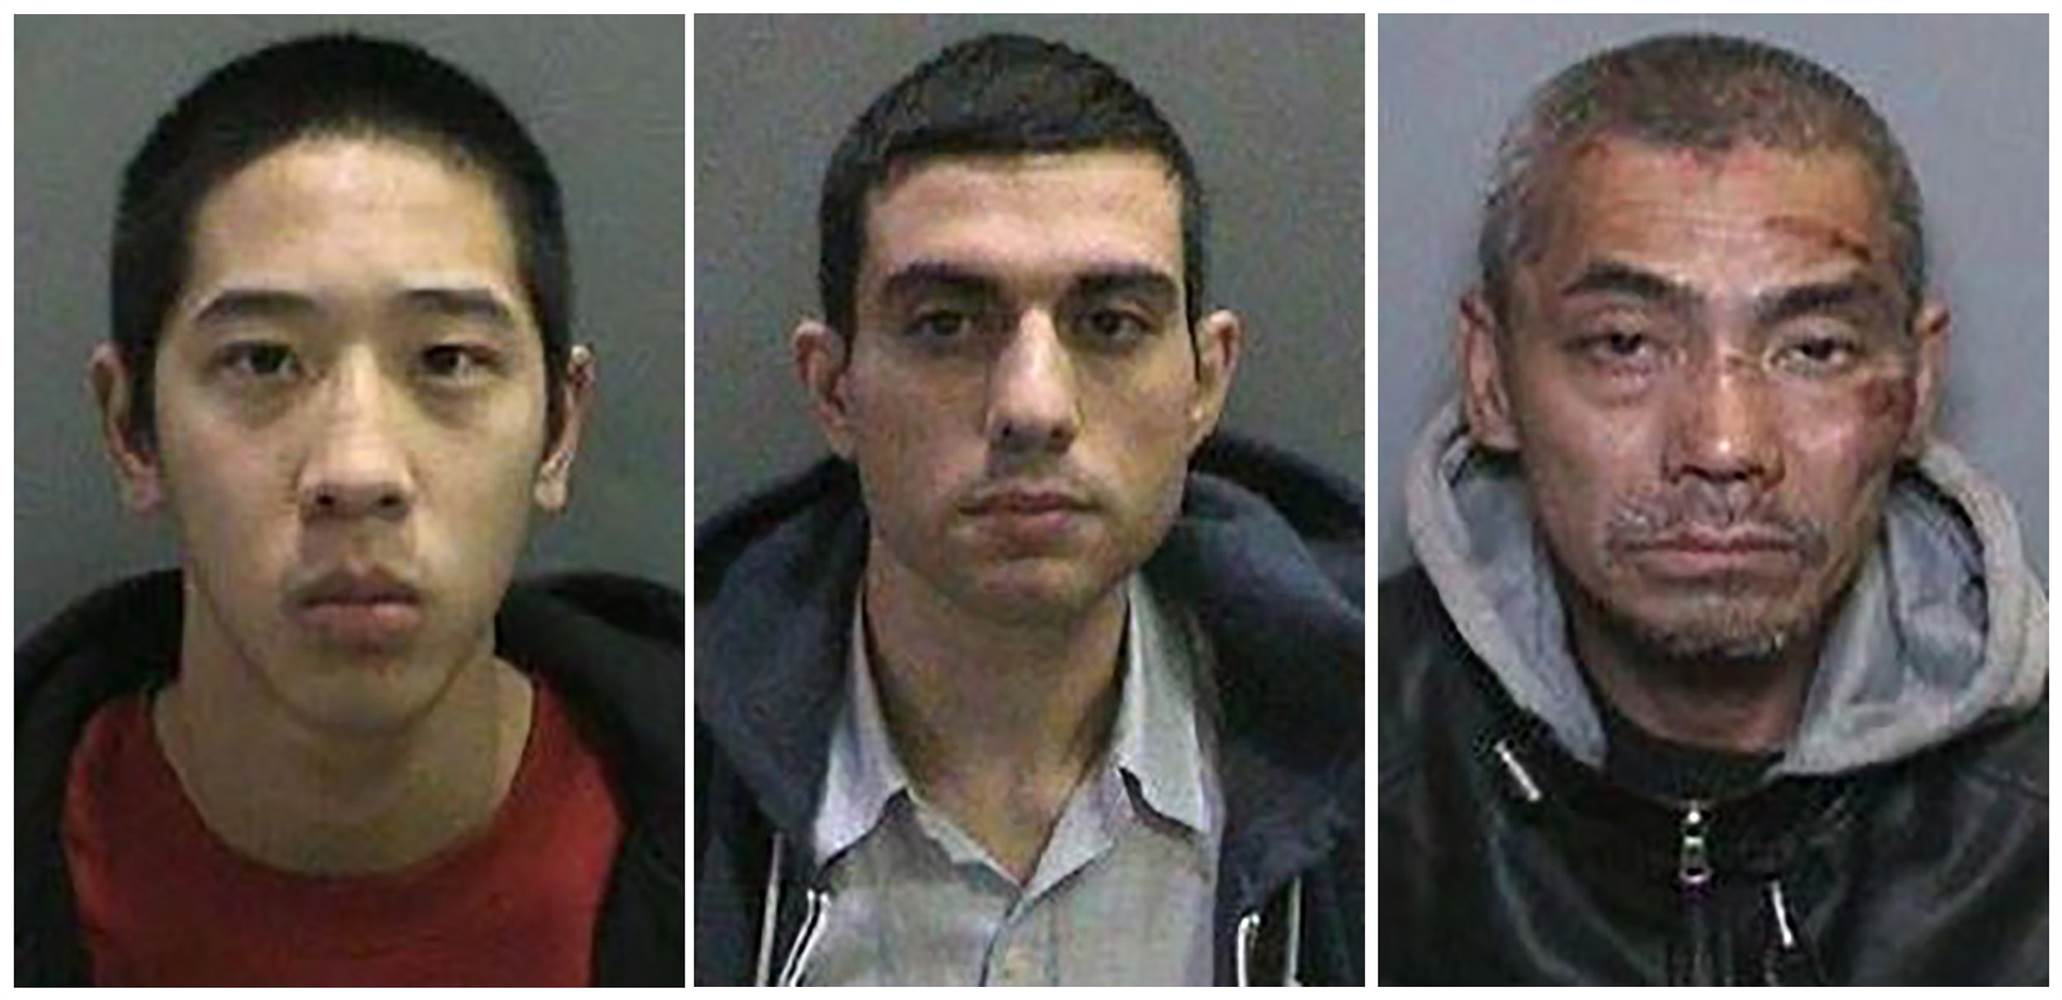 5 Associates of Escaped Inmates Arrested in California